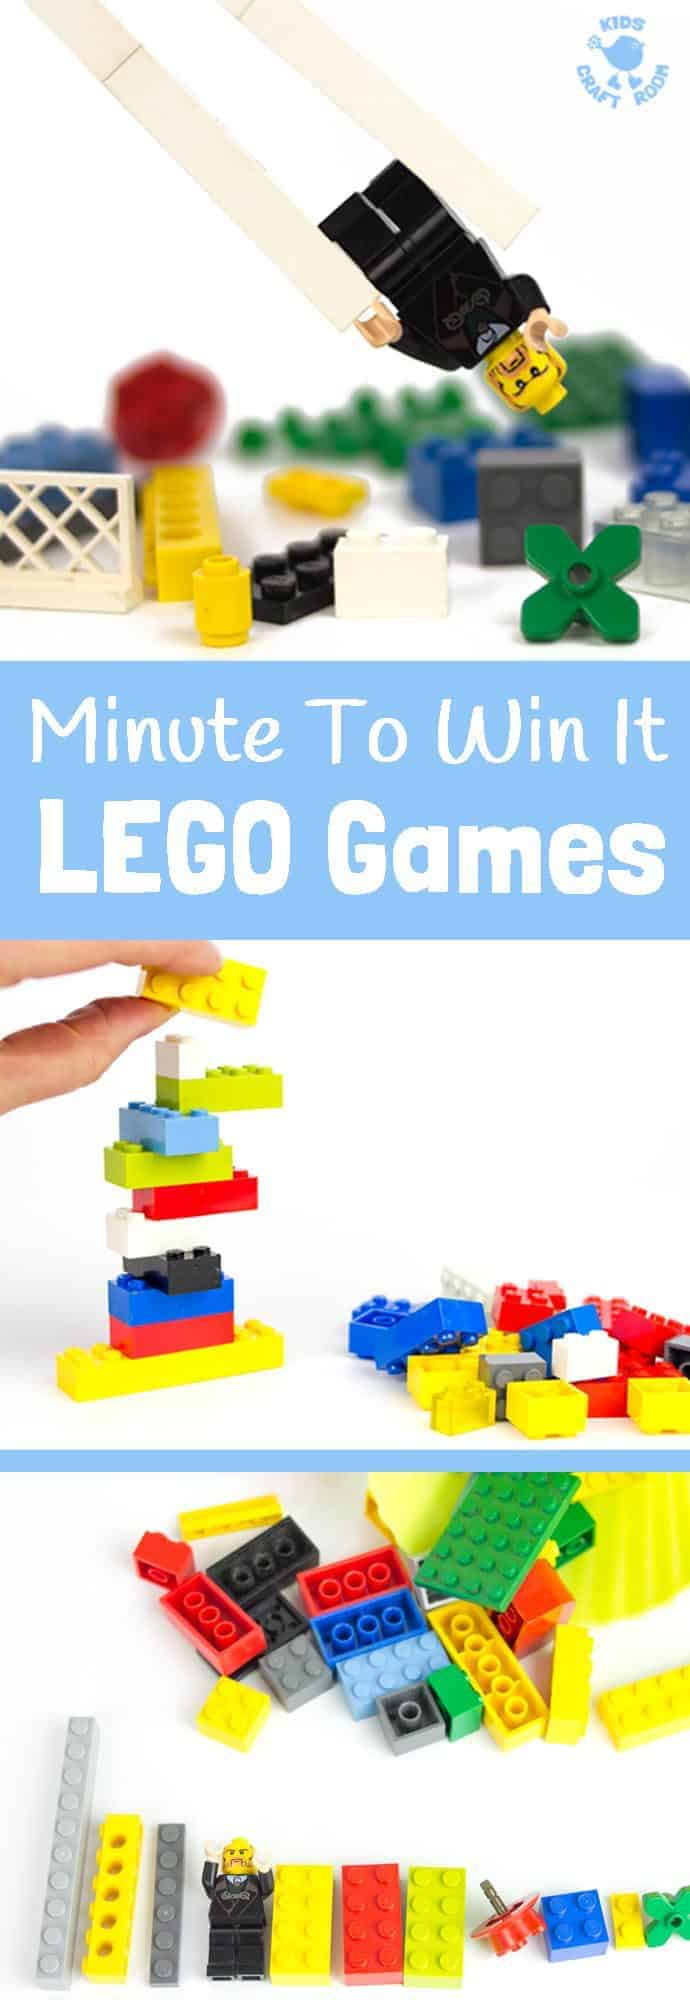 Exciting Minute To Win It Games with LEGO© are fun for all ages making them great for family games nights, kids play dates, Christmas, birthdays and New Year's Eve. Challenge your friends and family with these fun game ideas. A family activity everyone with enjoy. #MinuteToWinIt #MinuteToWinItGames #Games #GamesIdeas #FamilyGames #GamesNight #FamilyGamesNight #KidsGames #KidsActivities #Lego #LegoIdeas #LegoGames #NewYear'sEve #NewYear'sEveIdeas #Party #PartyGames #PartyIdeas